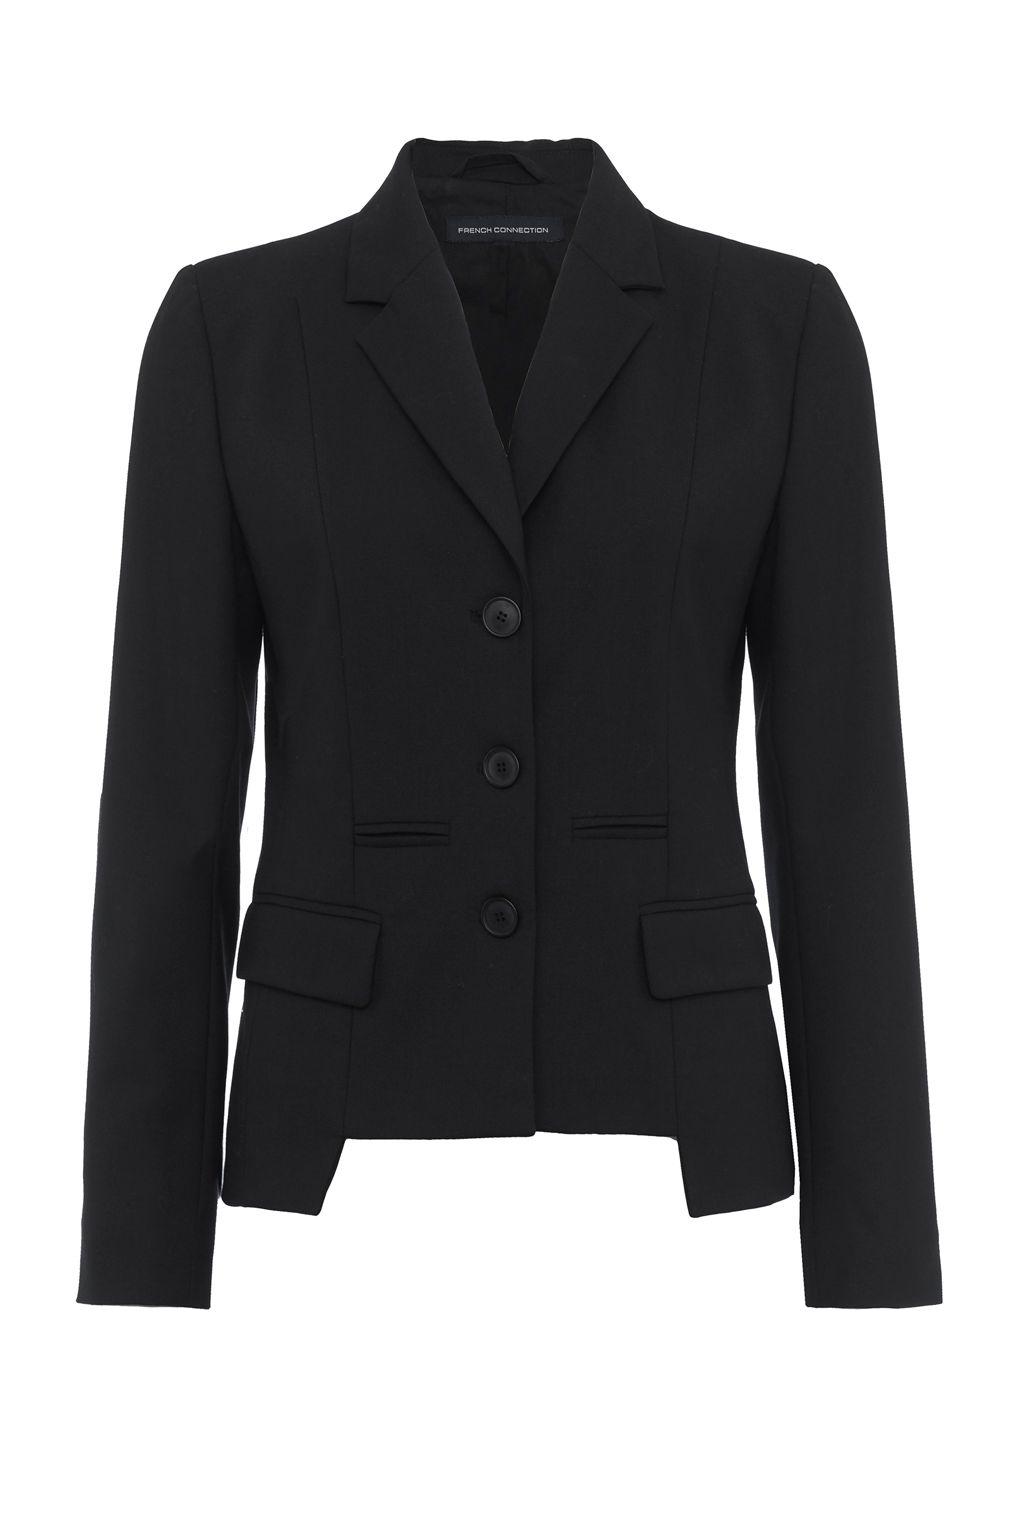 French Connection Winter Tallulah Tailored Blazer, Black